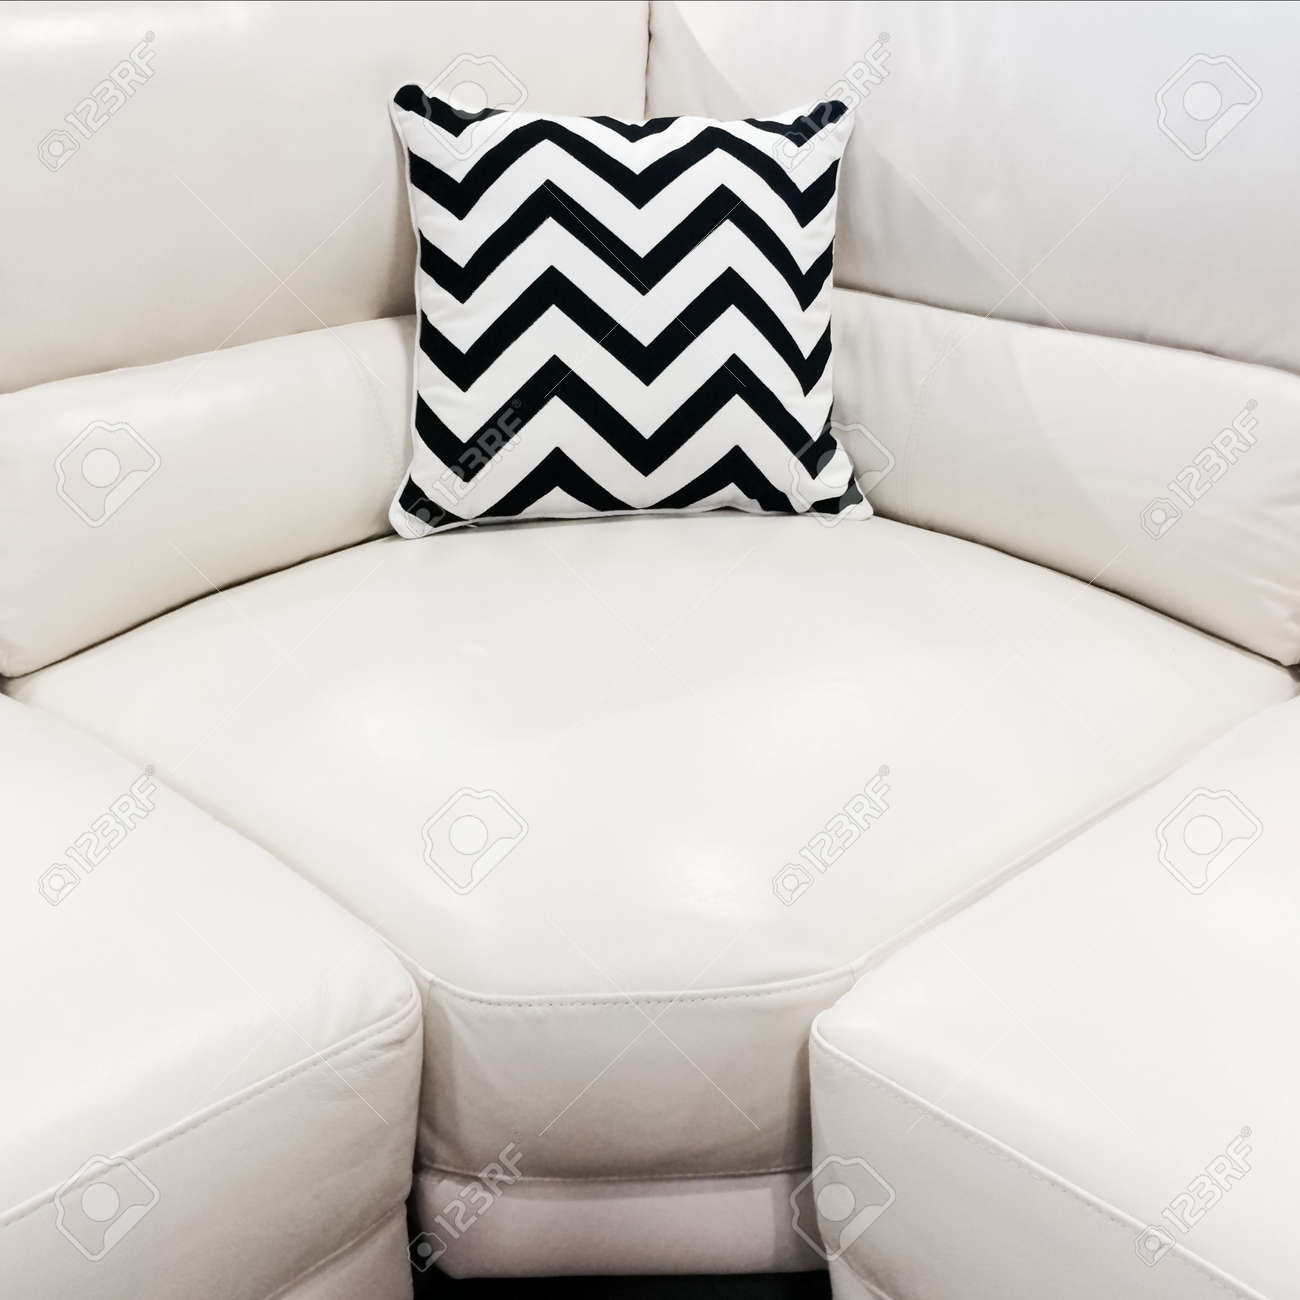 Awe Inspiring White Leather Sofa With Striped Decorative Cushion Modern Furniture Ncnpc Chair Design For Home Ncnpcorg